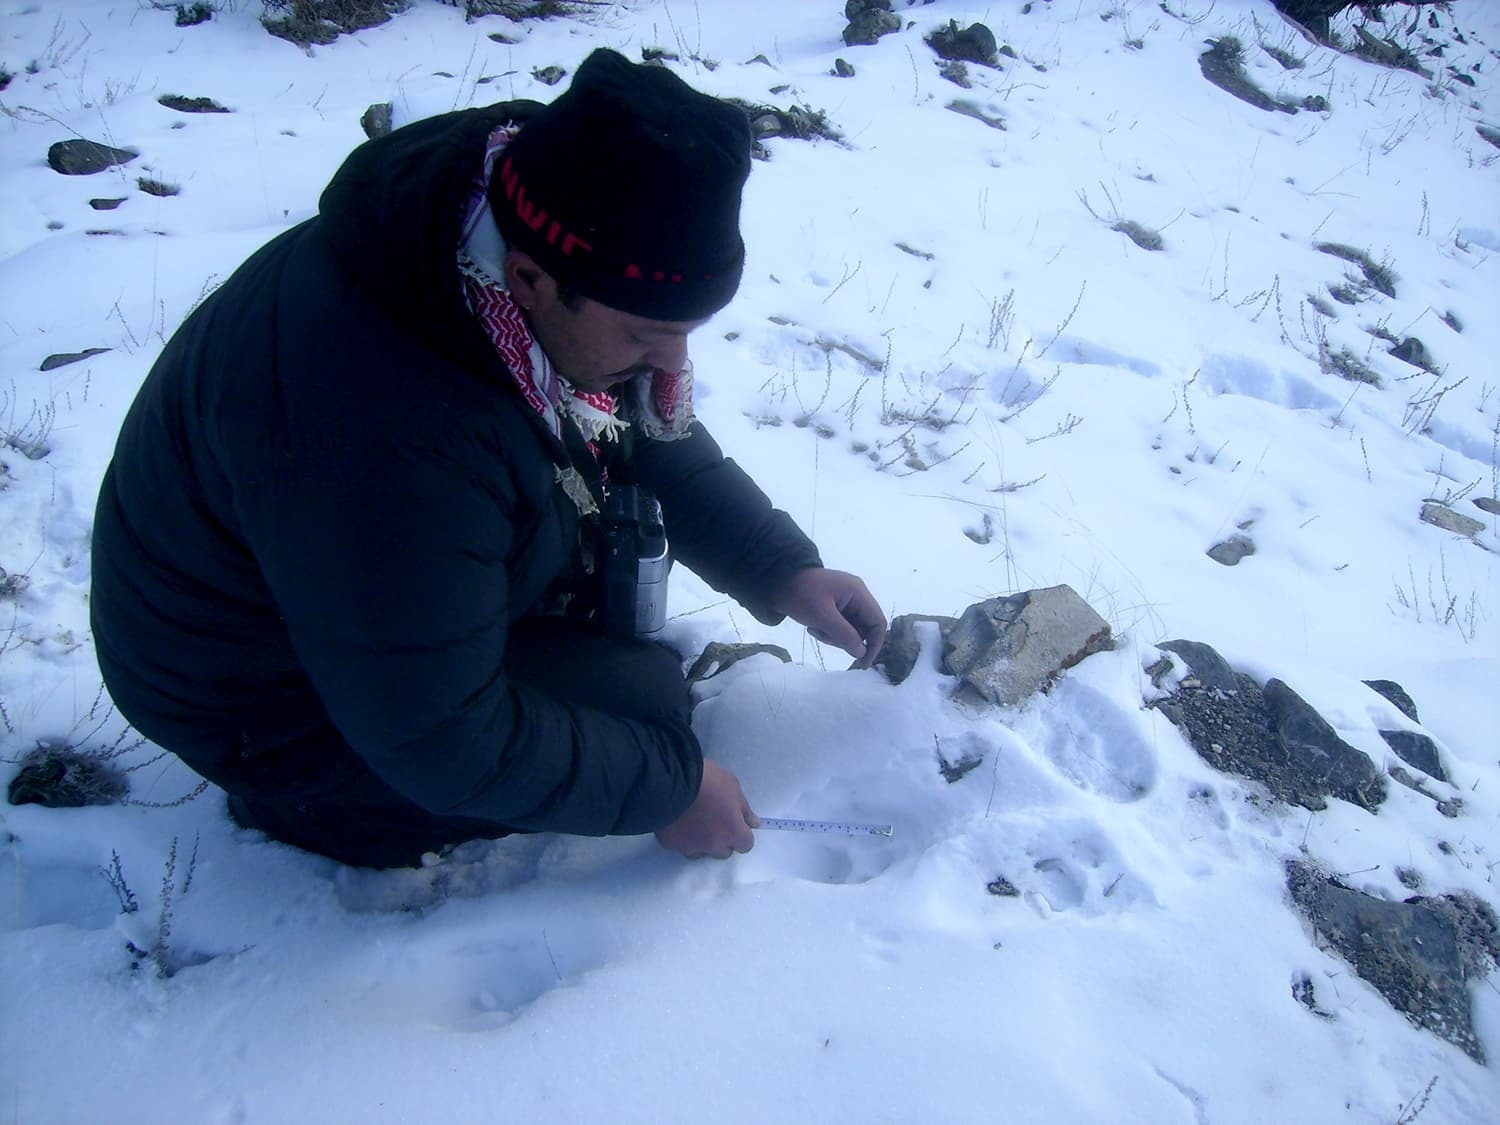 Taking a sample for a scientific survey on snow leopards.